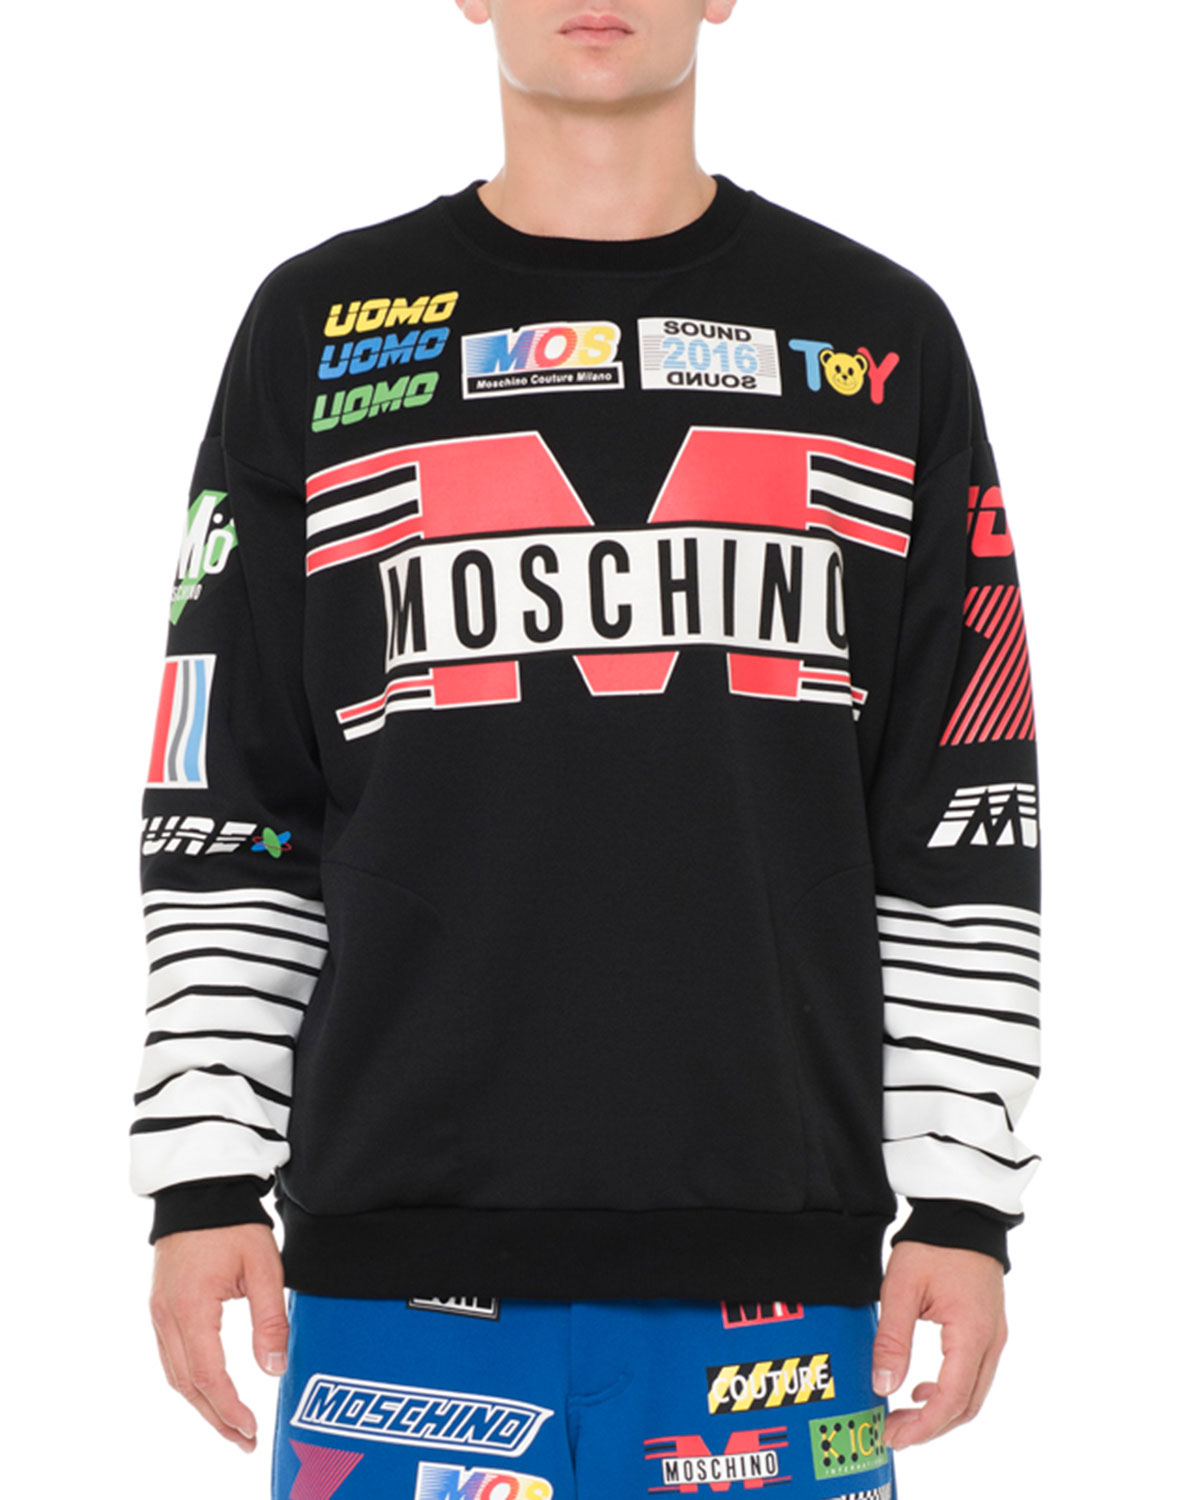 Logo-Print Graphic Sweatshirt, Black